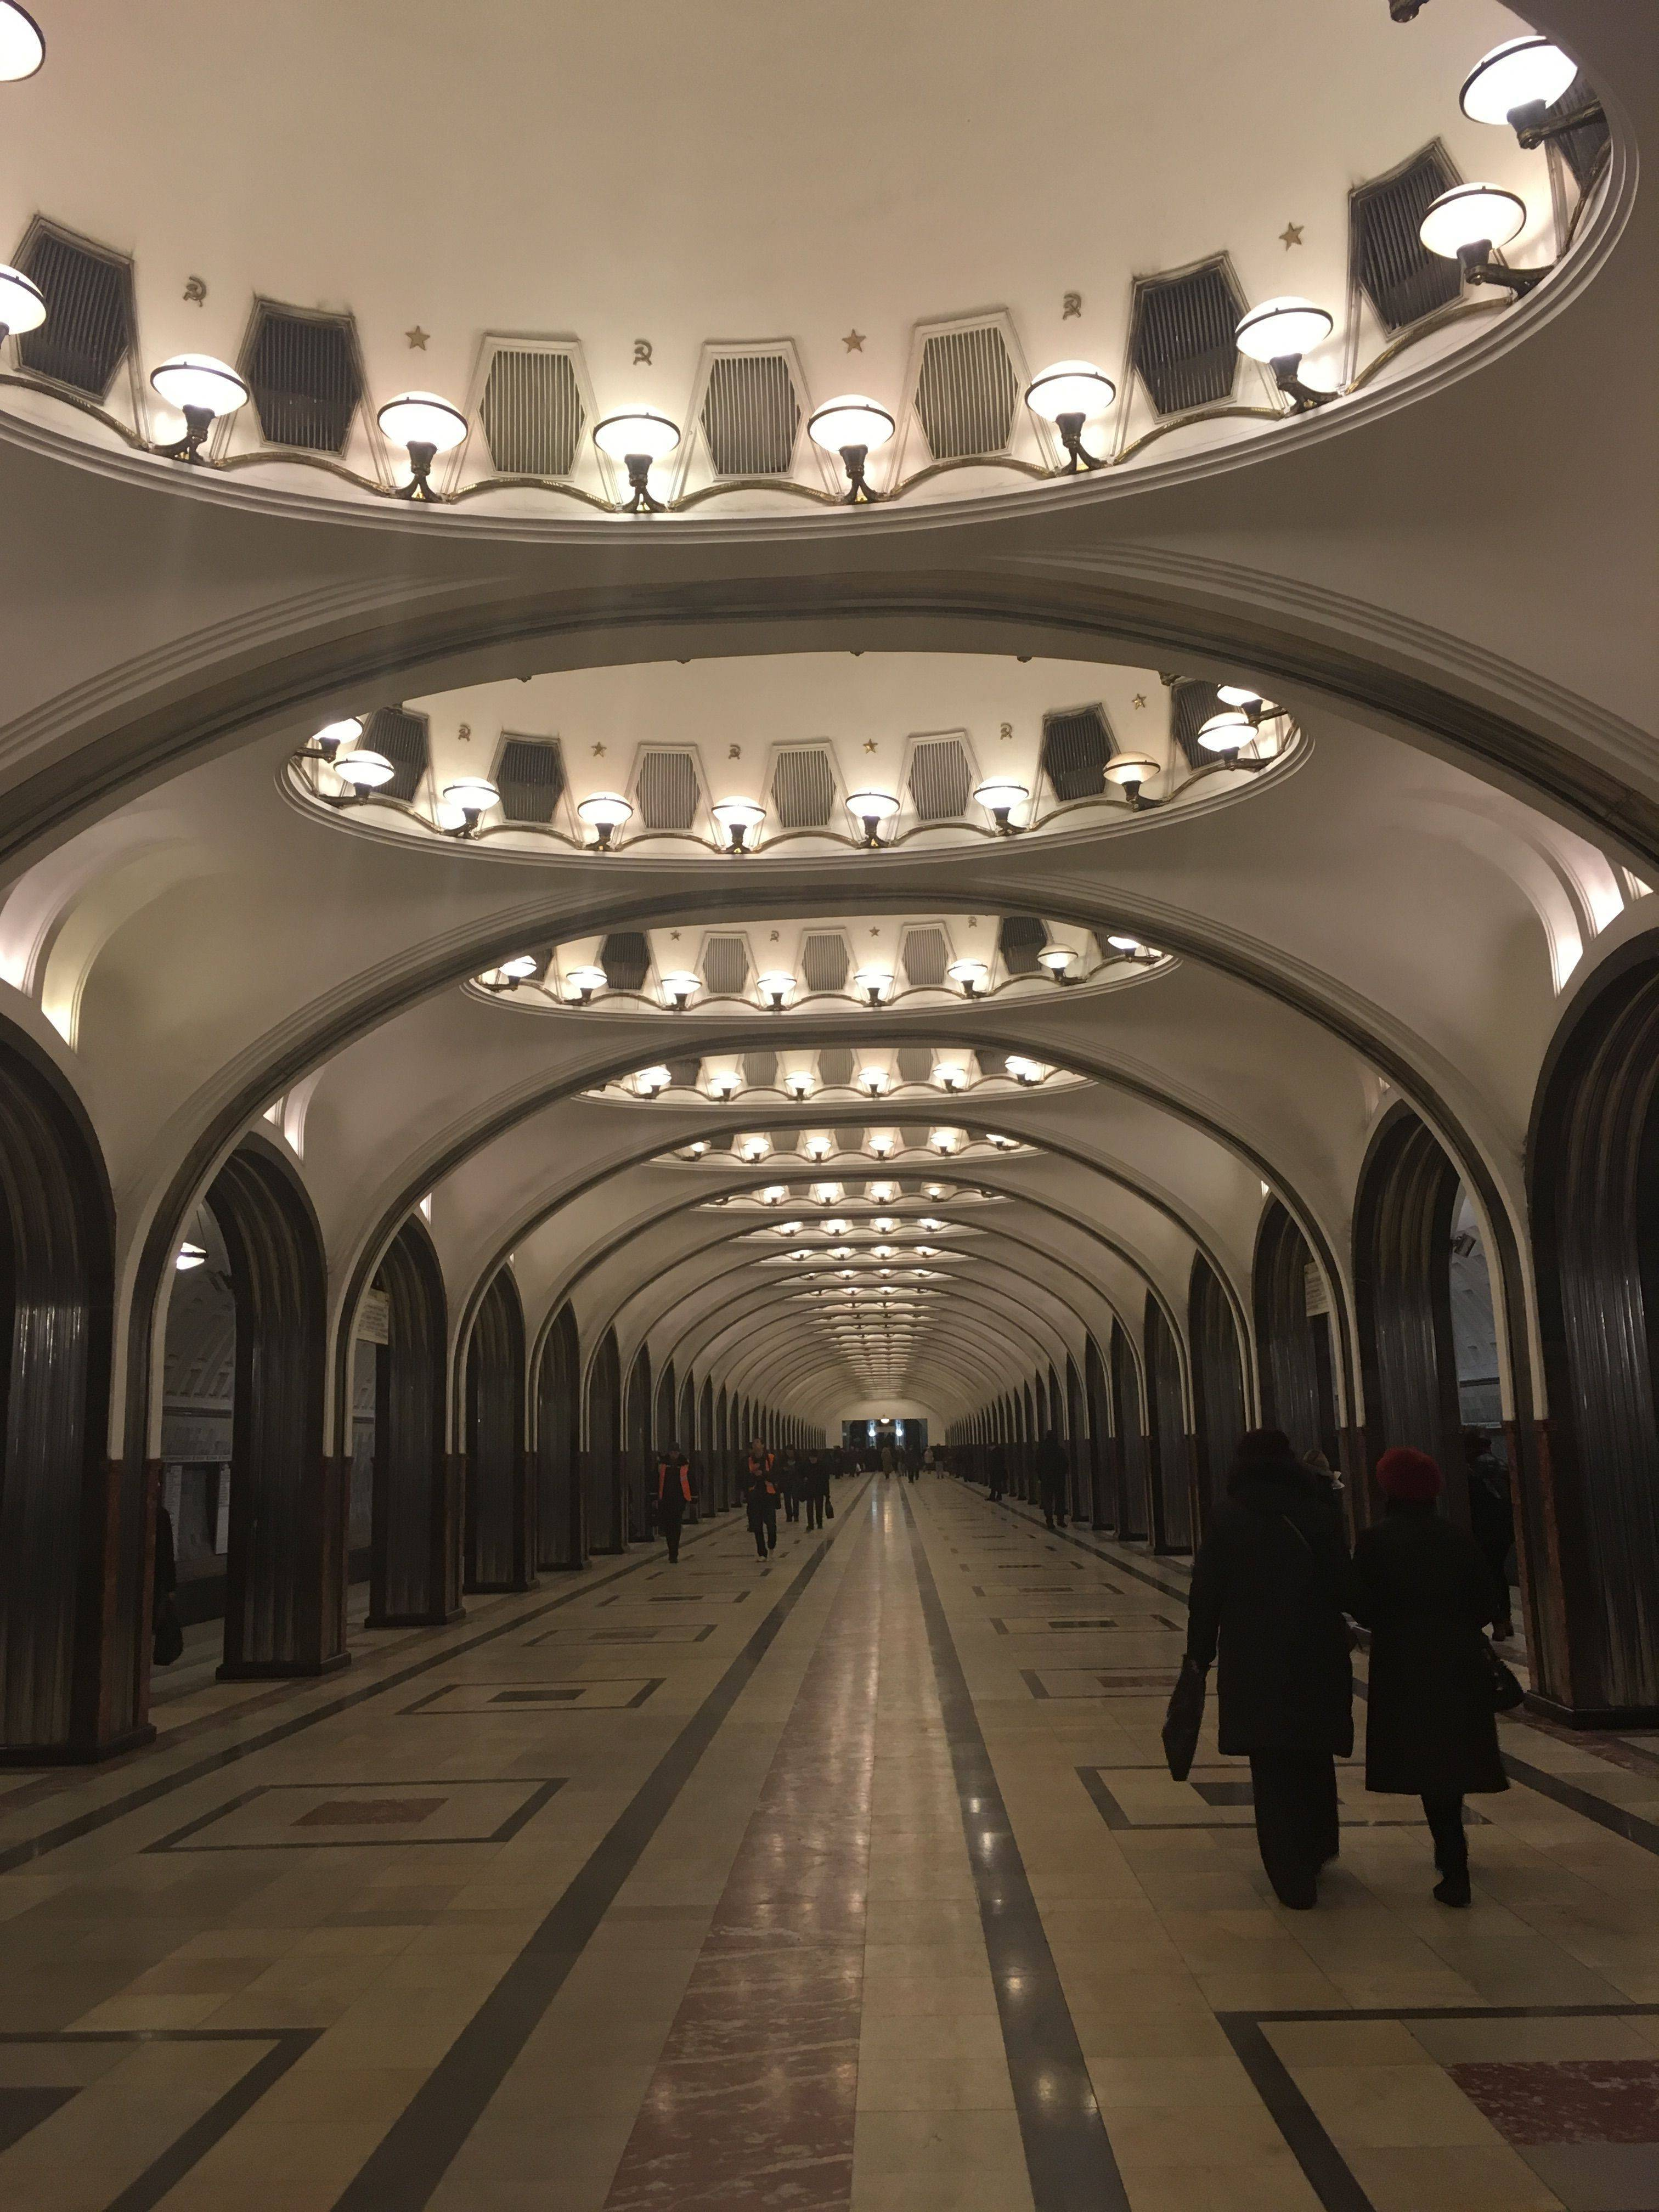 Moscow Metro History and Architecture Sights of Russia 2019